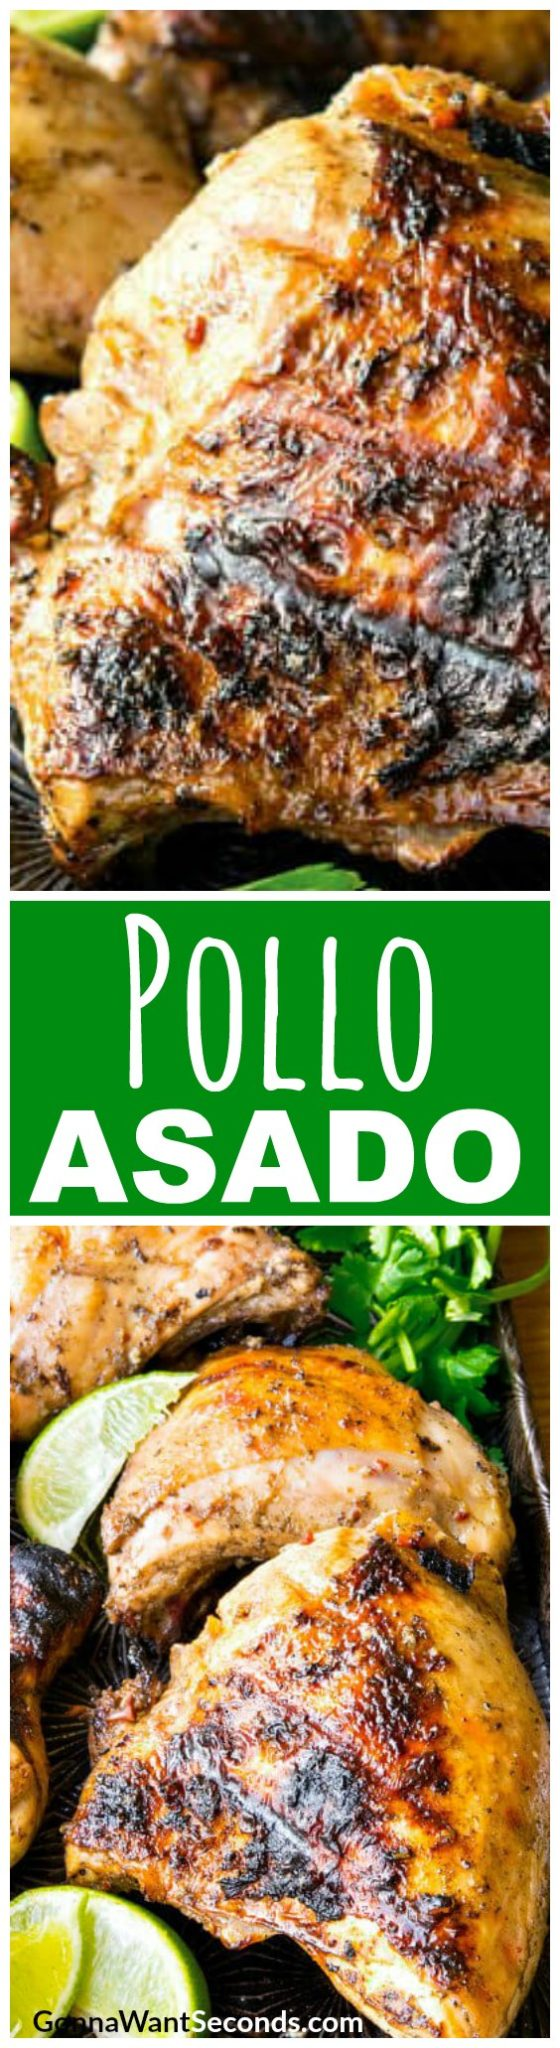 Our Pollo Asado Recipe utilizes a flavor-packed marinade to create an authentic Mexicano grilled chicken perfect for eating as an entree or as a filling in tacos. We also list oven instructions as well. So al carbon or el horno our Pollo Asado will put a Mexican spin on your next chicken dinner! Our Pollo Asado Recipe utilizes a flavor-packed marinade to create an authentic Mexicano grilled chicken perfect for eating as an entree or as a filling in tacos. We also list oven instructions as well. So al carbon or el horno our Pollo Asado will put a Mexican spin on your next chicken dinner! #Marinade #Recipe #Tacos #Mexicano #Chicken #Pollo #Asado #AchiotePaste #Horno #AlCarbon #Oven #Crockpot #Grilled #Dinner #Leftover #Authentic #Thighs #Tortillas #Food